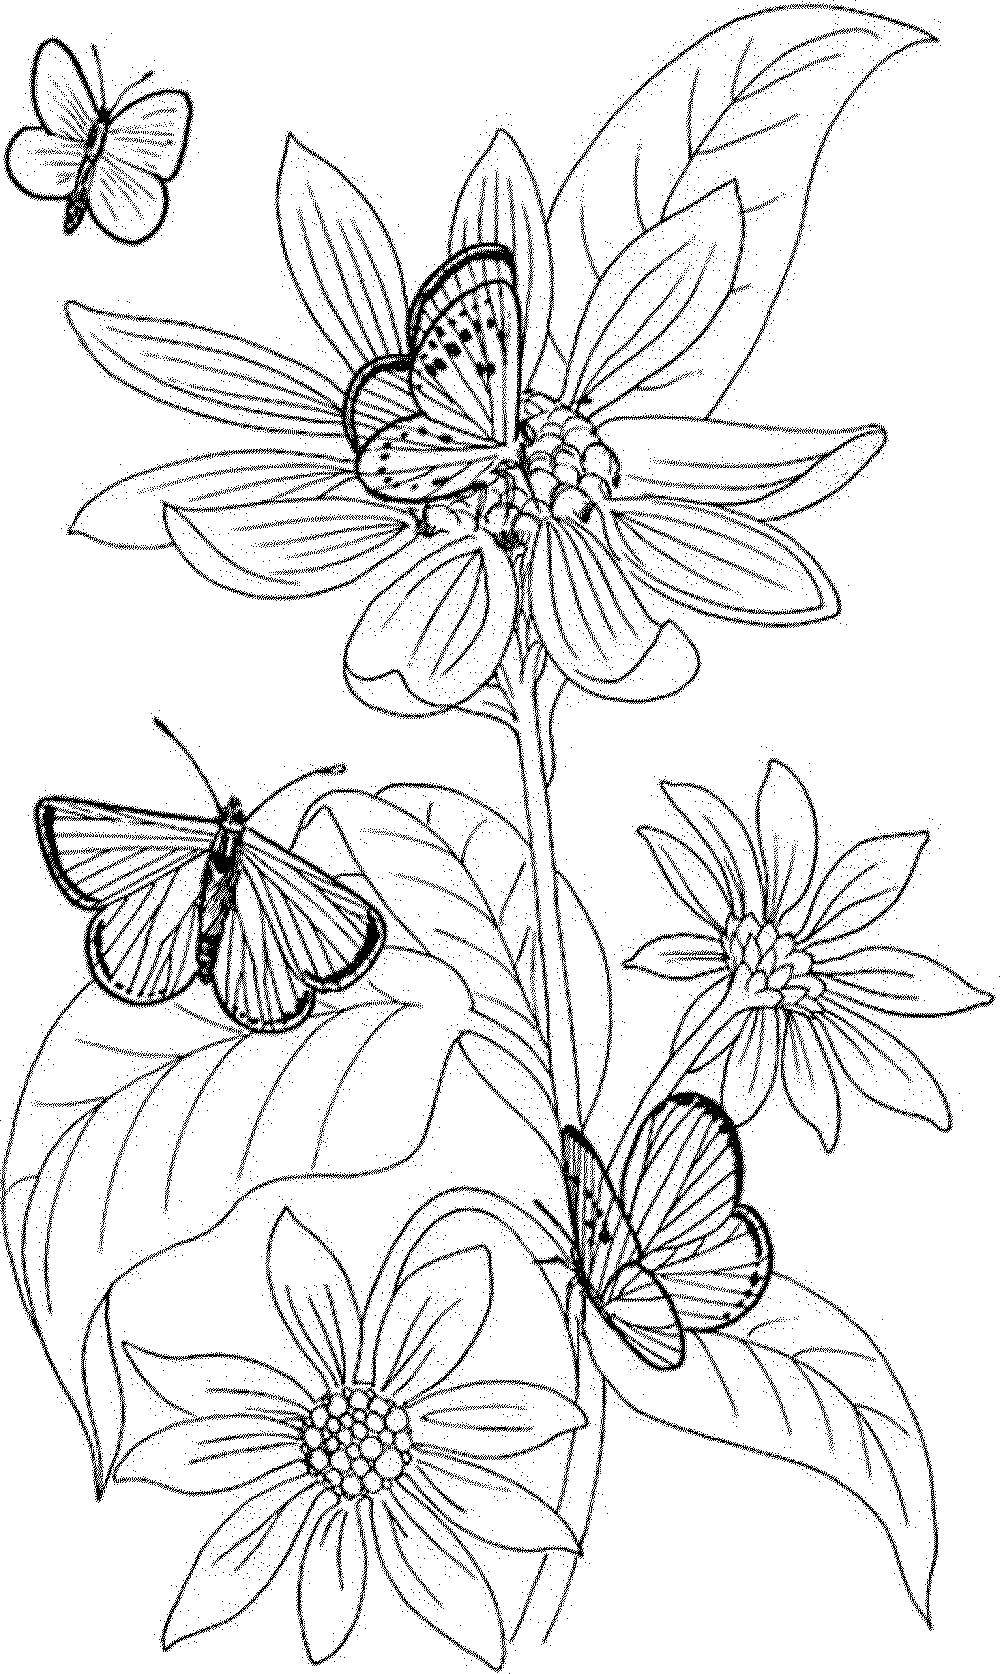 This is a graphic of Accomplished Printable Coloring Pages for Adults Flowers